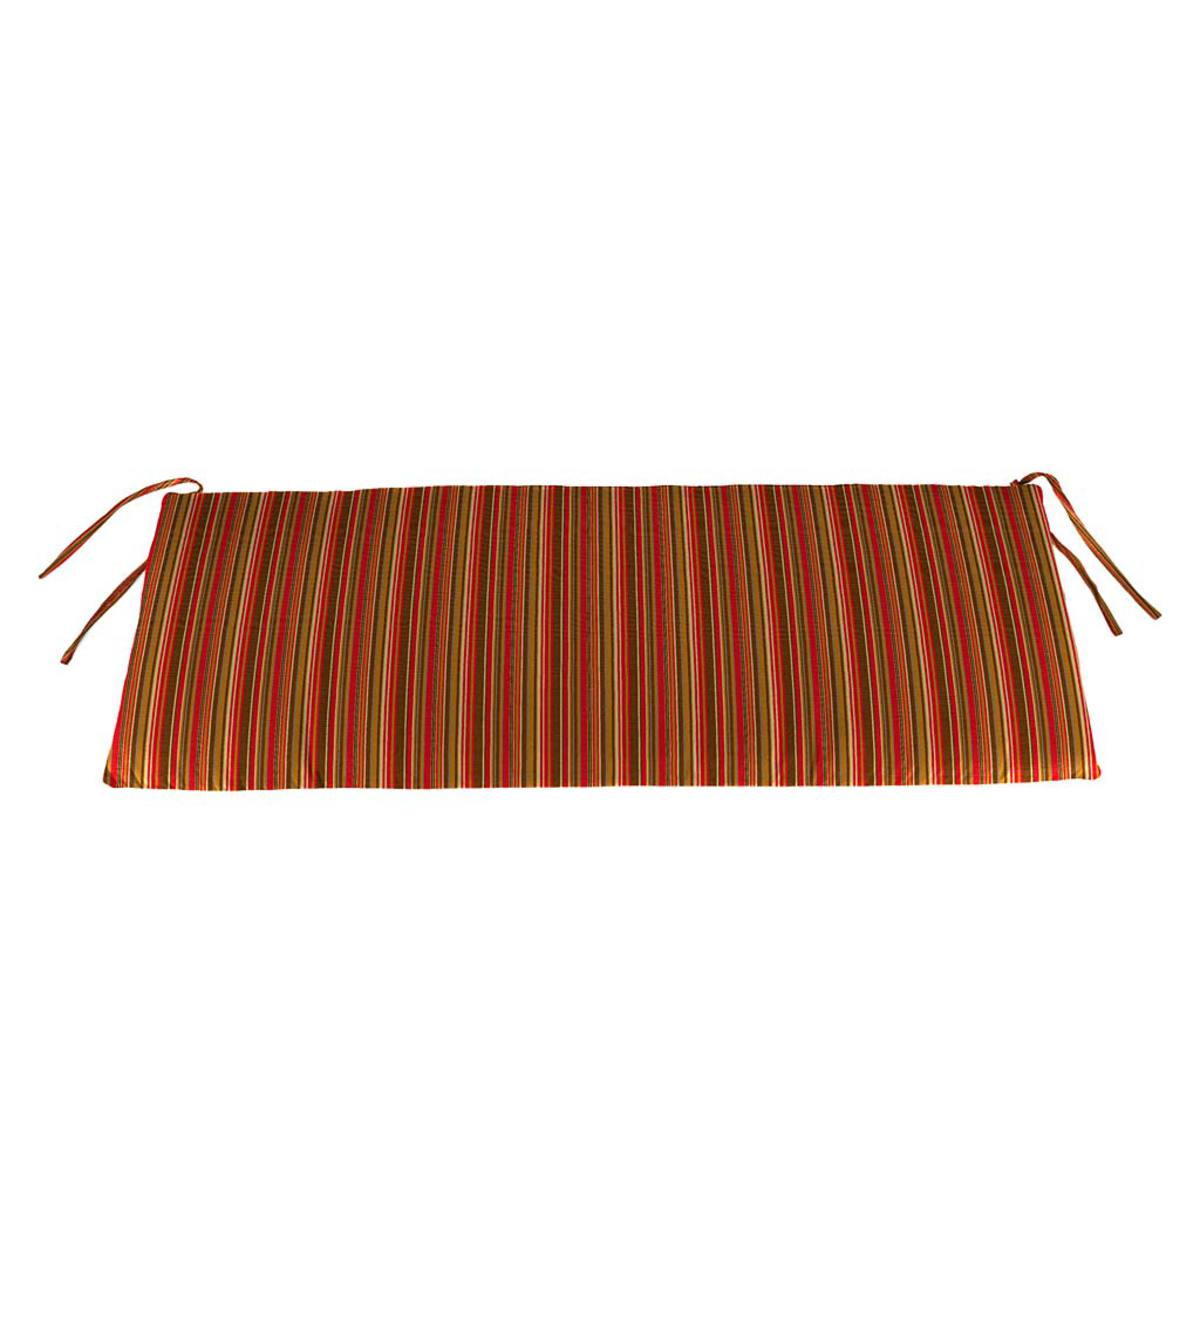 "Sunbrella Classic Swing/Bench Cushion, 41"" x 20"" x 3"" - Cherry Stripe"